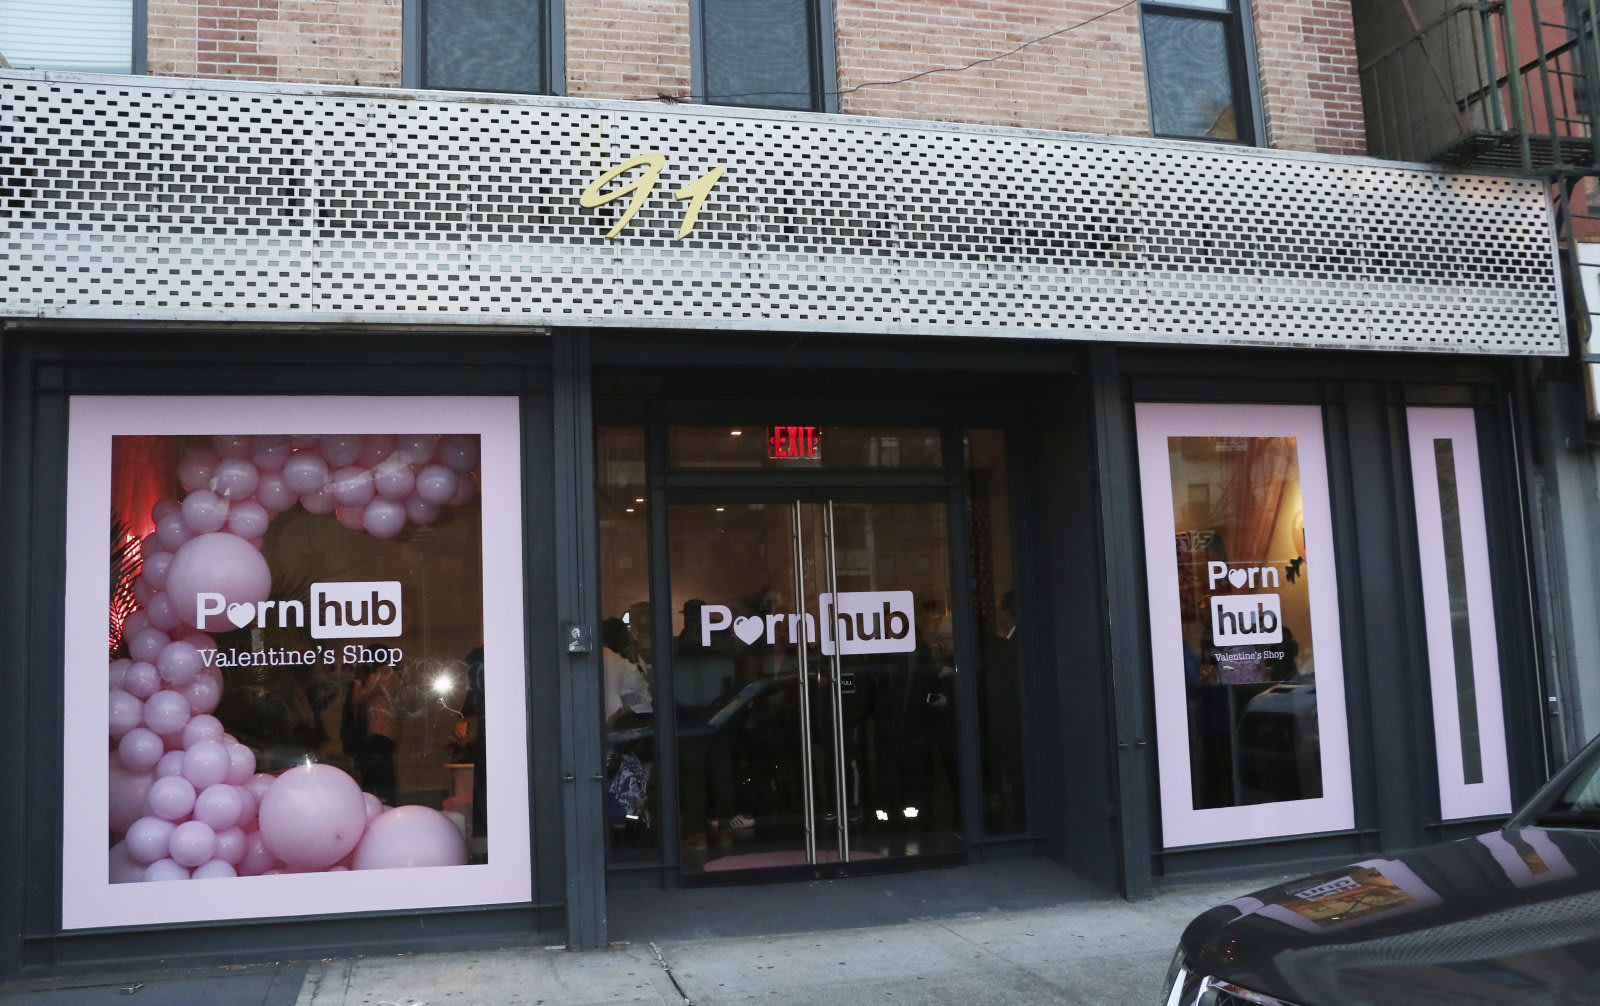 Pornhub Pop-up Valentine's Shop